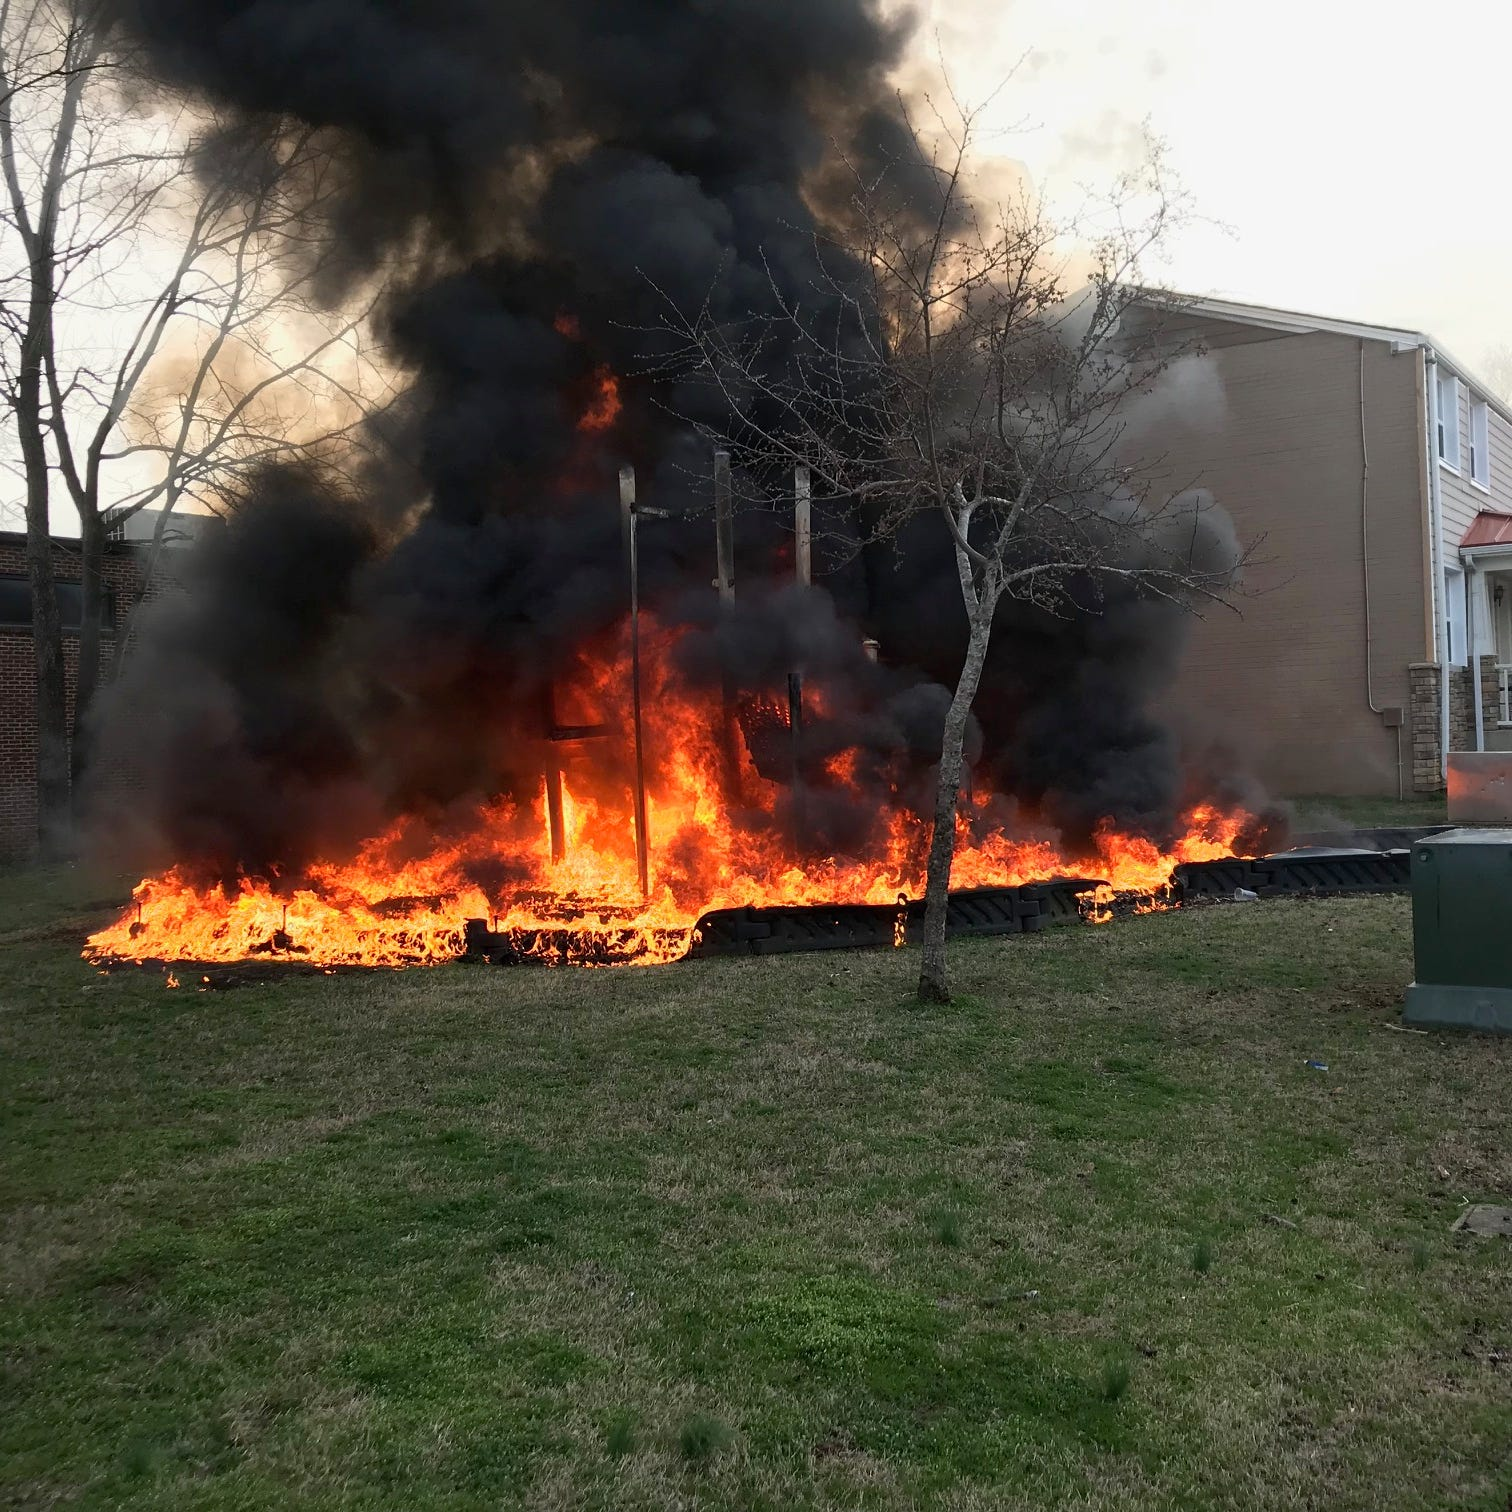 Authorities seeking person who set fire to playground at Parkside housing complex